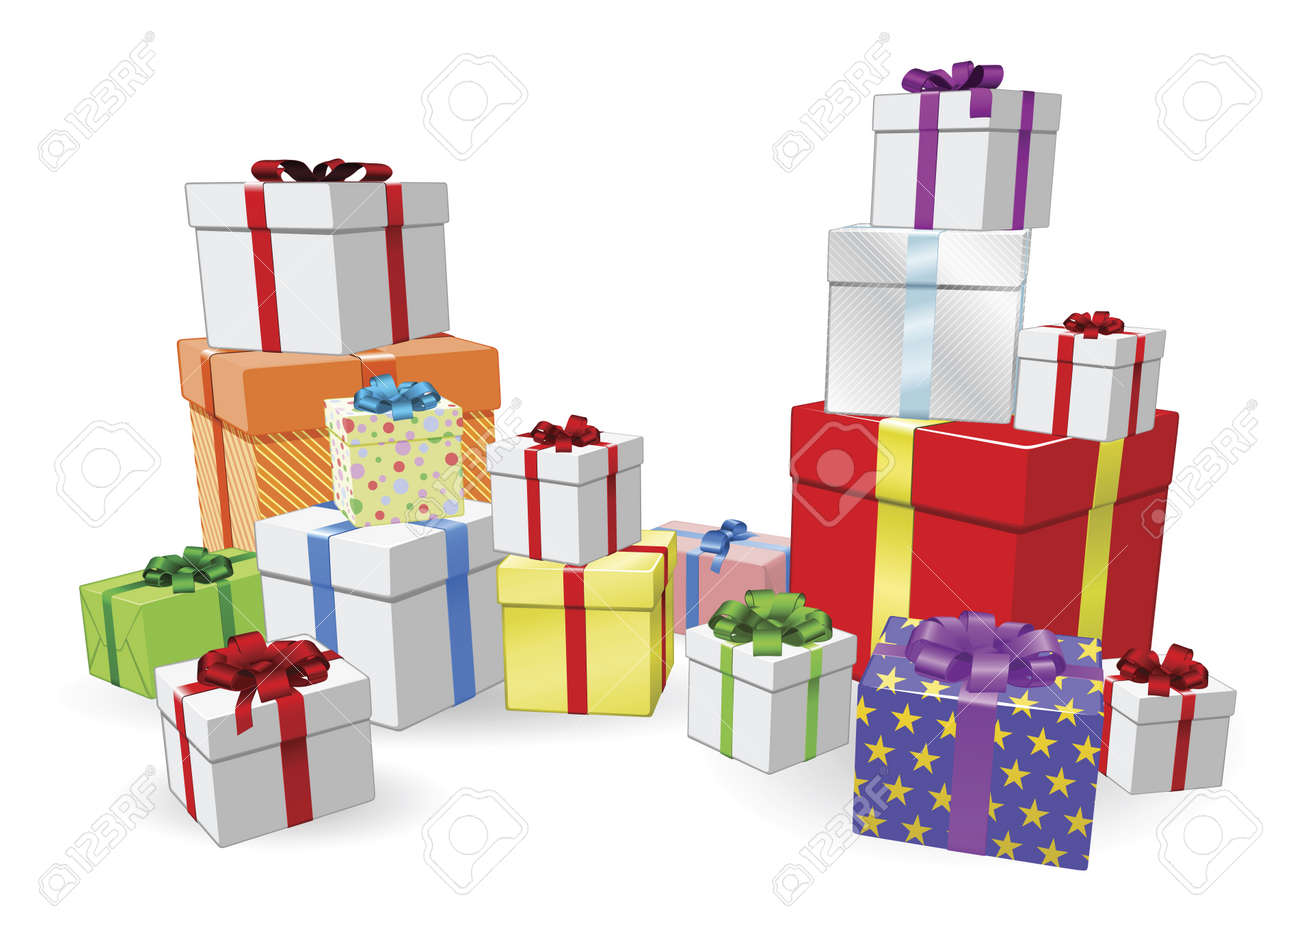 Lots of colorful wrapped presents for Birthday, Christmas or other celebration - 10278290